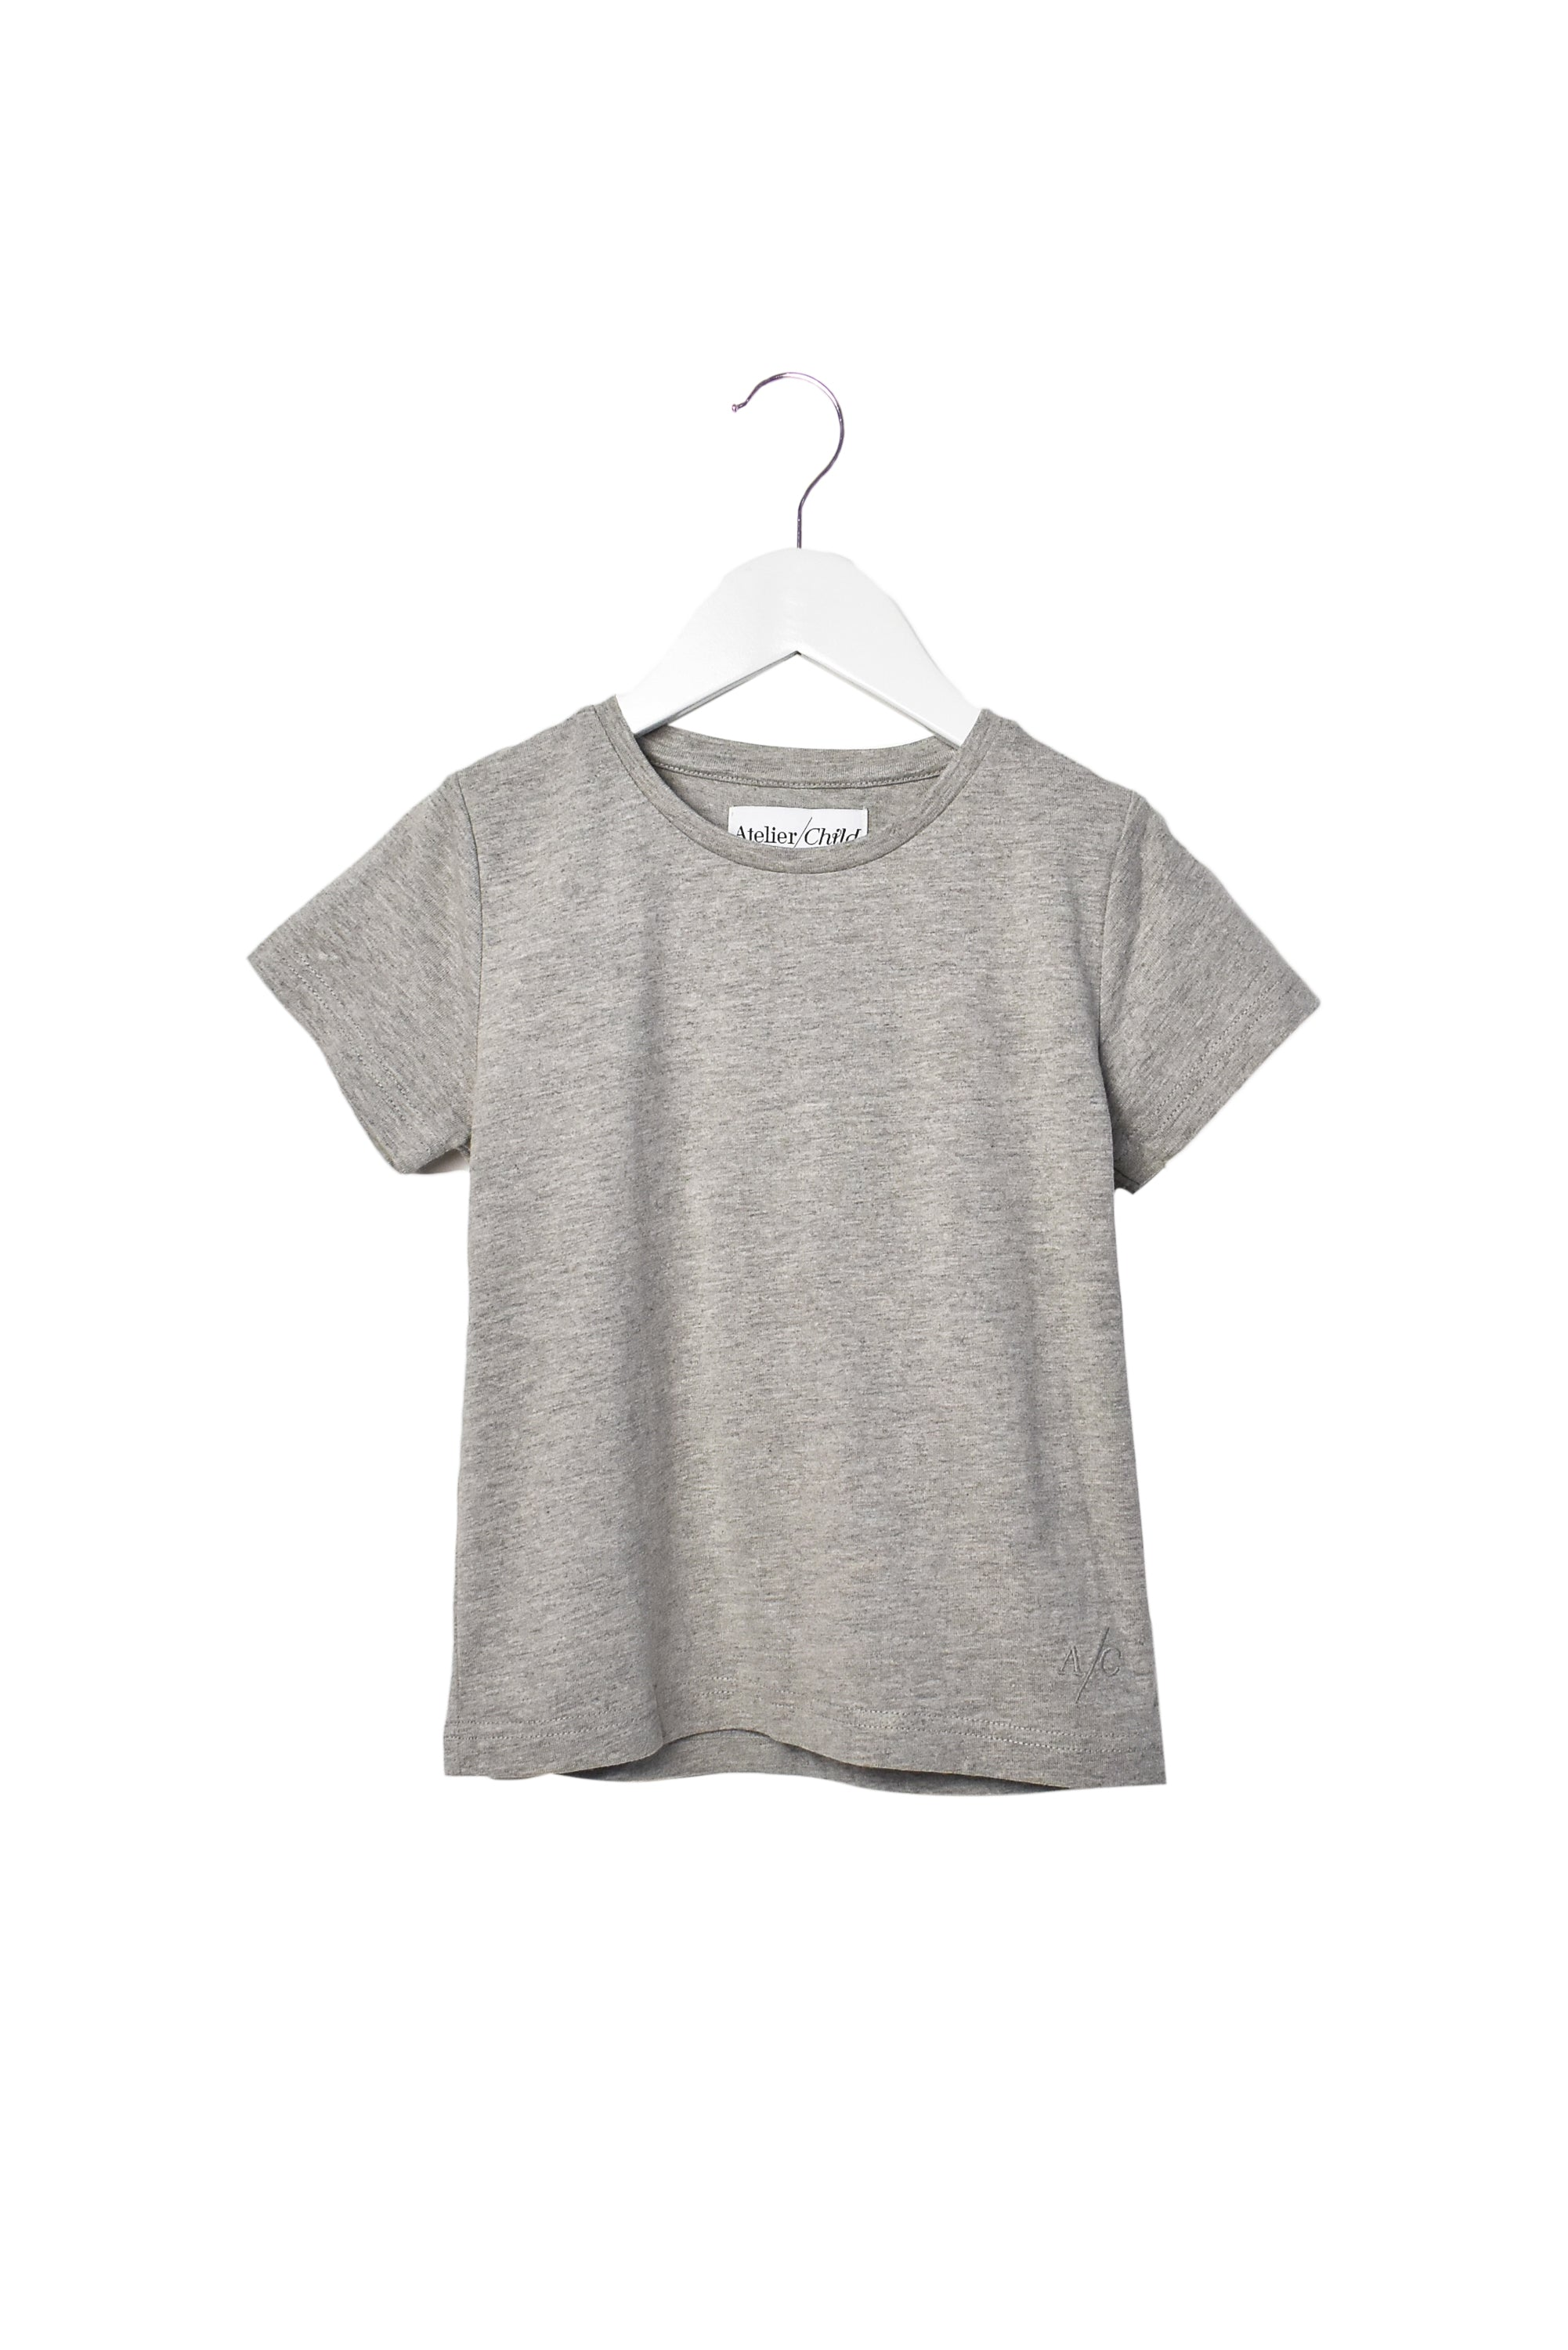 10007852 Atelier Child Kids~T-Shirt 4-5T at Retykle